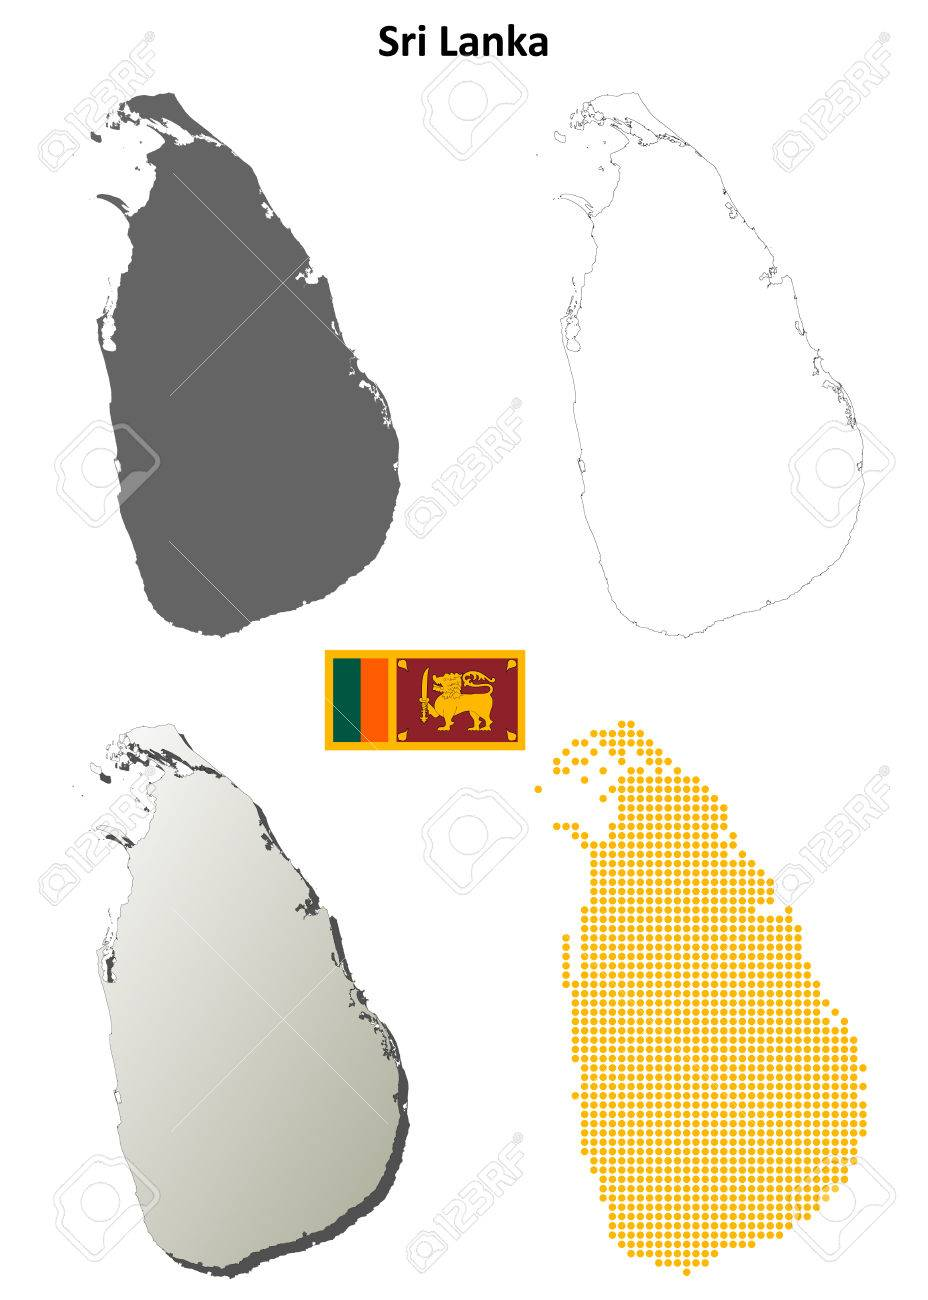 Sri Lanka blank detailed outline map set